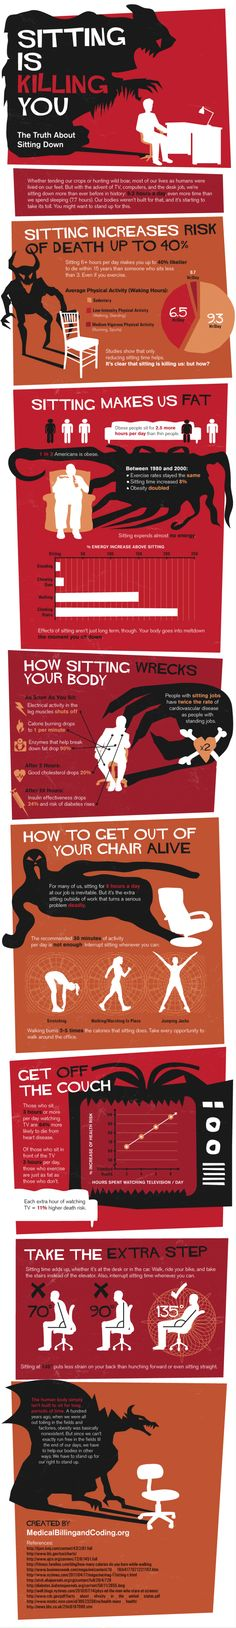 Sitting kills. Time to think about how long you should stick to your chair.